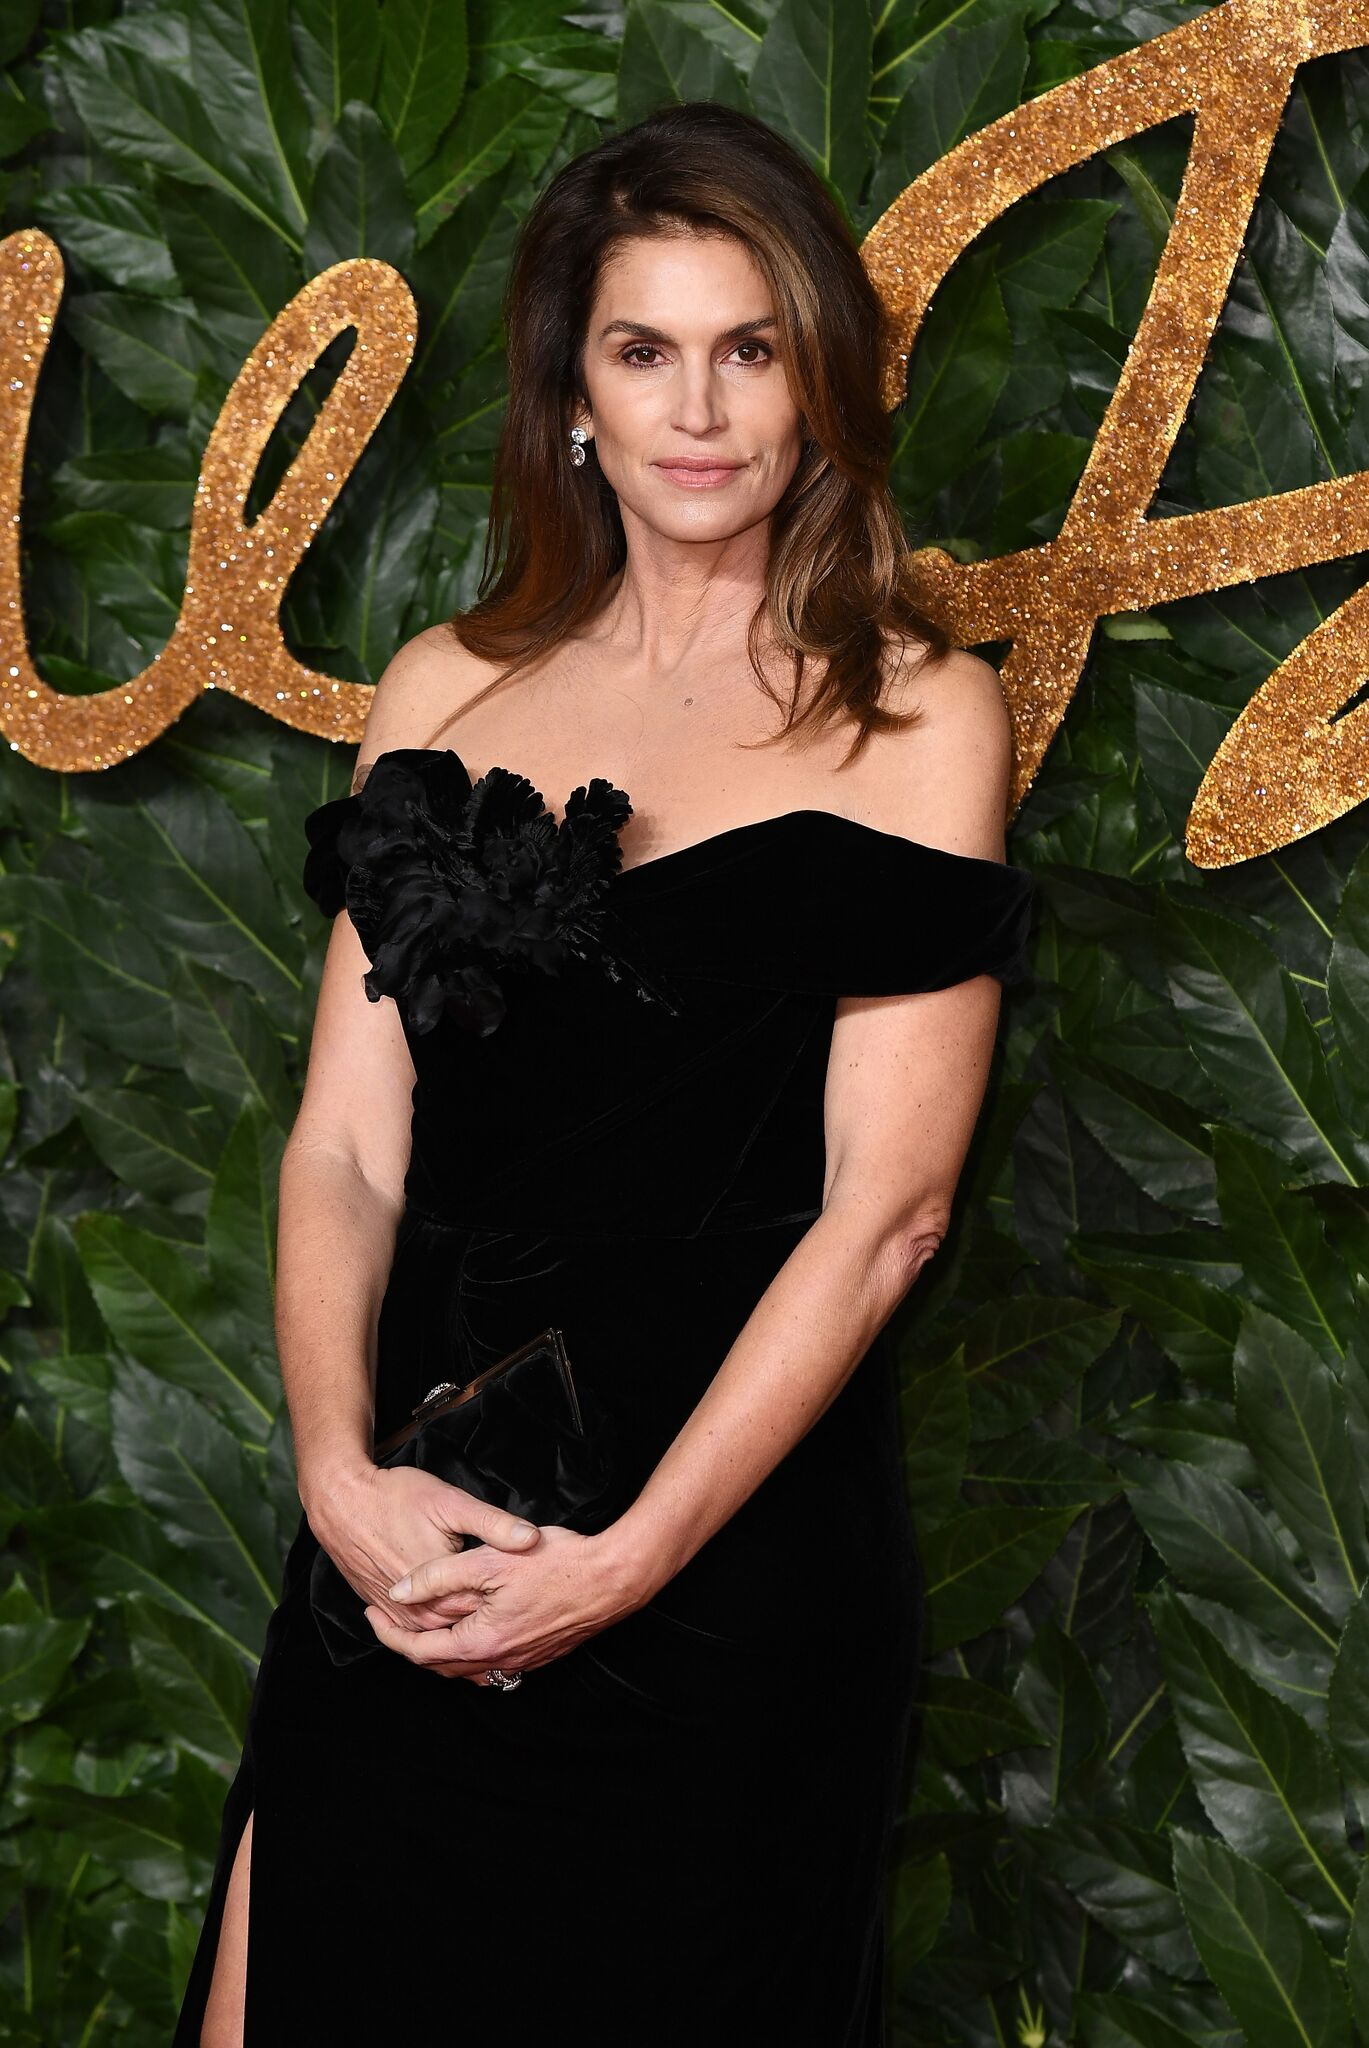 Cindy Crawford arrives at The Fashion Awards 2018 In Partnership With Swarovski at Royal Albert Hall  | Getty Images